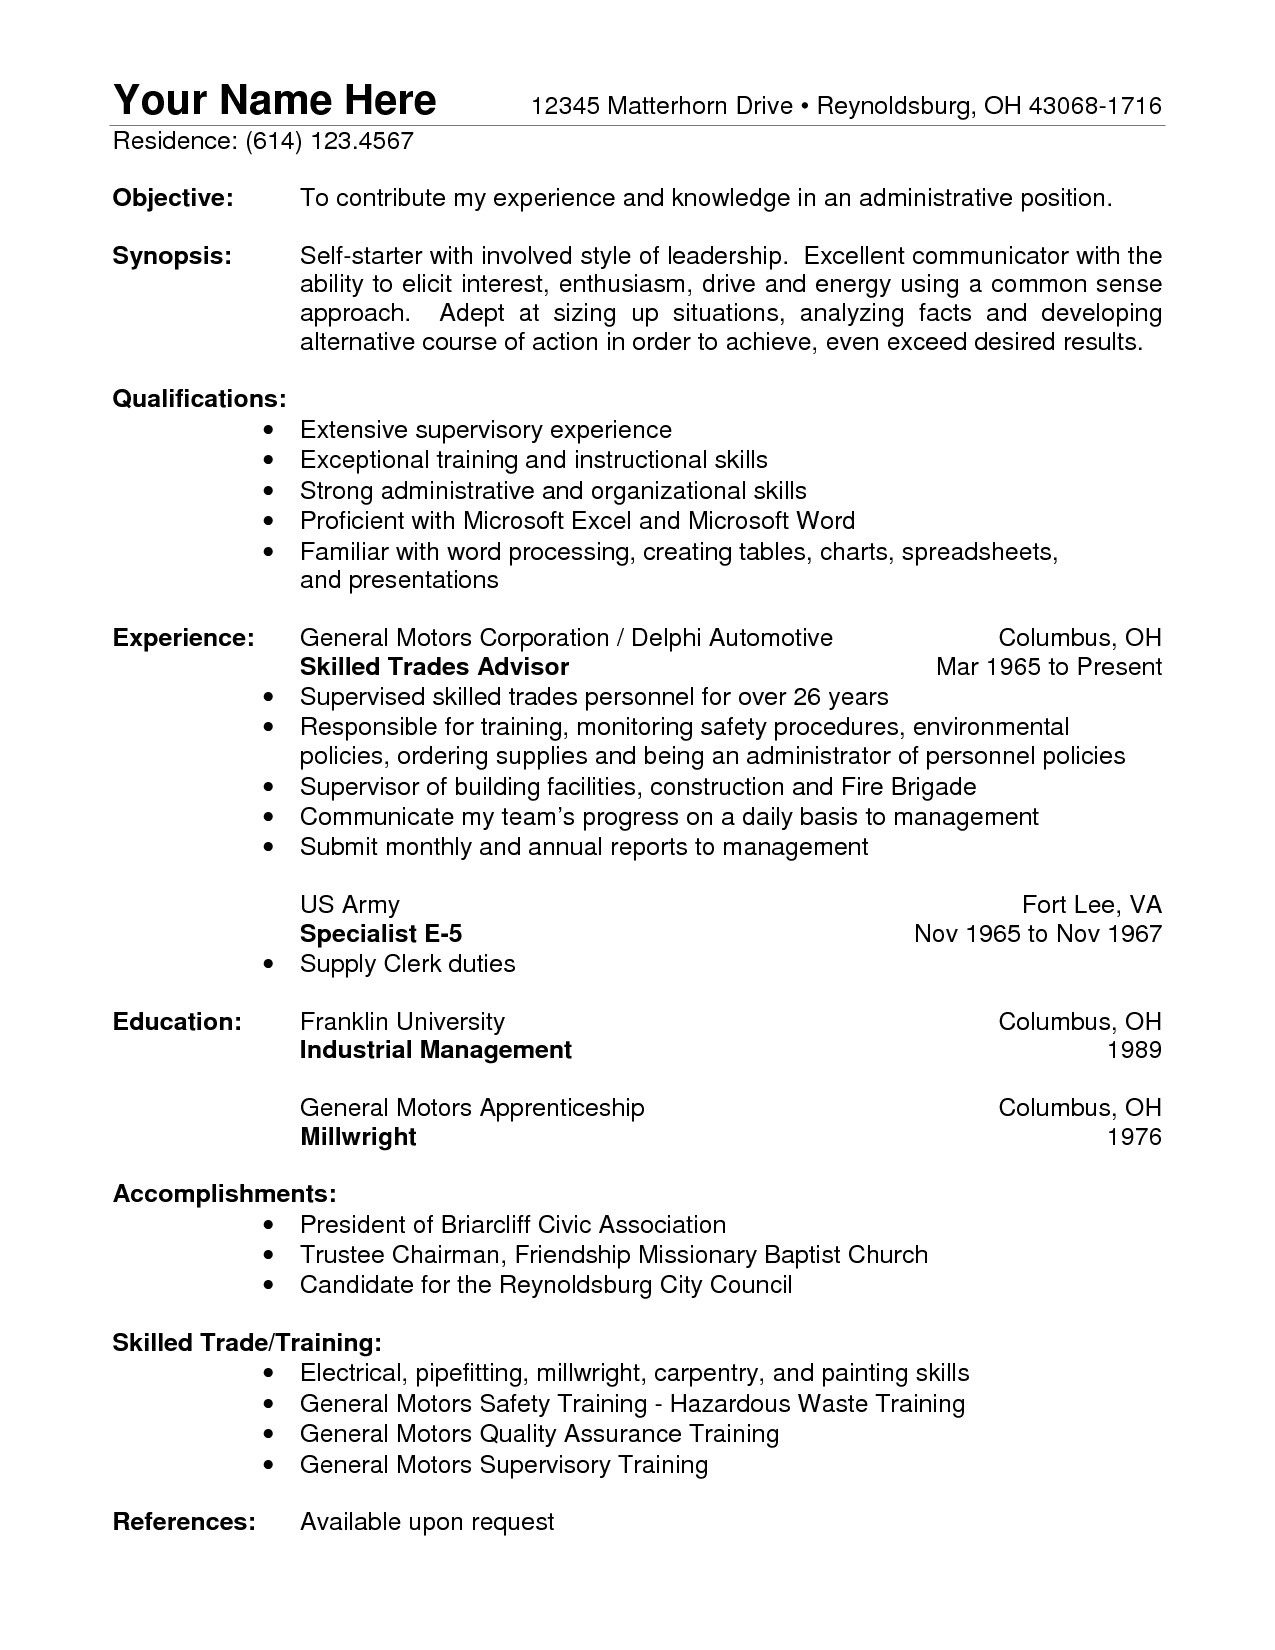 resume objective sample general